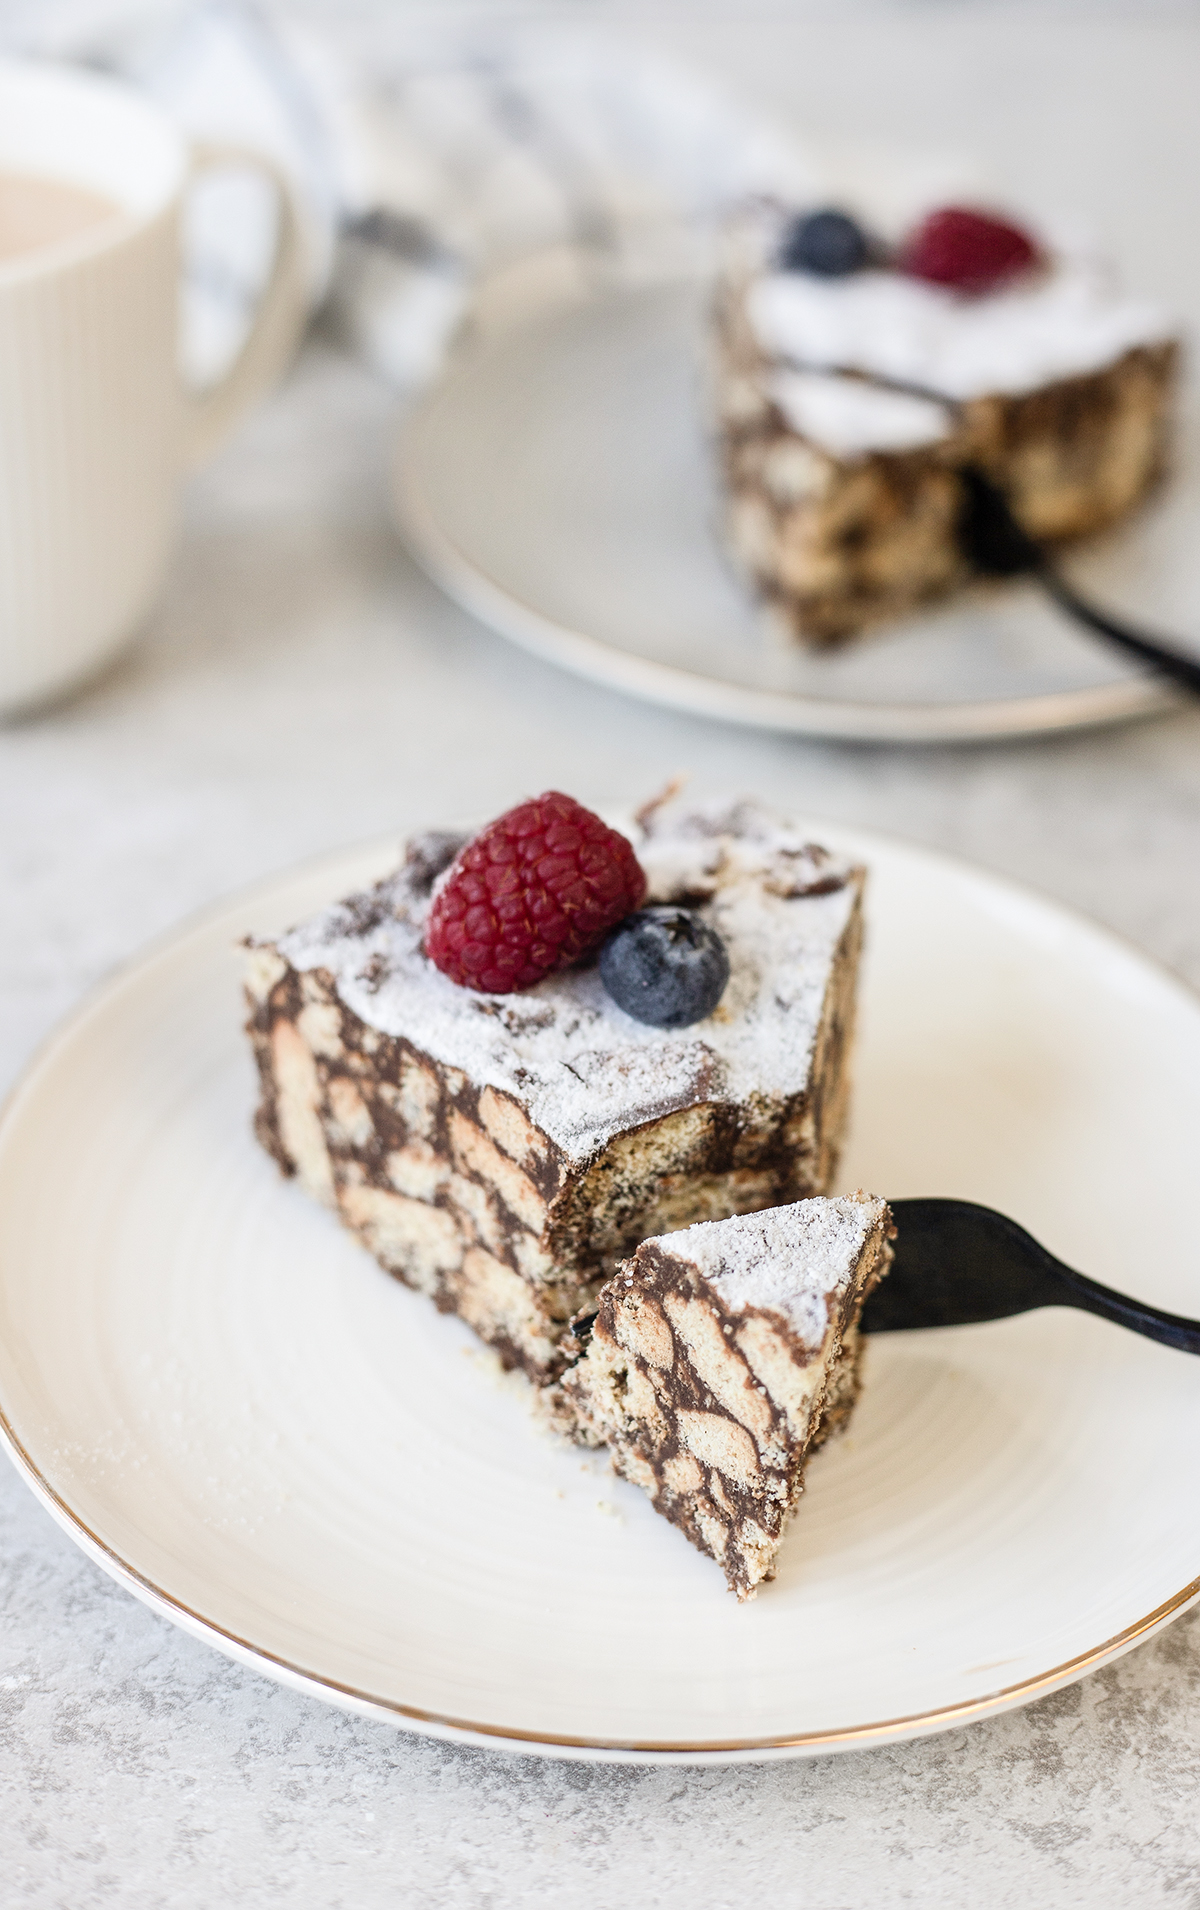 Lazy Cake is a delicious and easy dessert